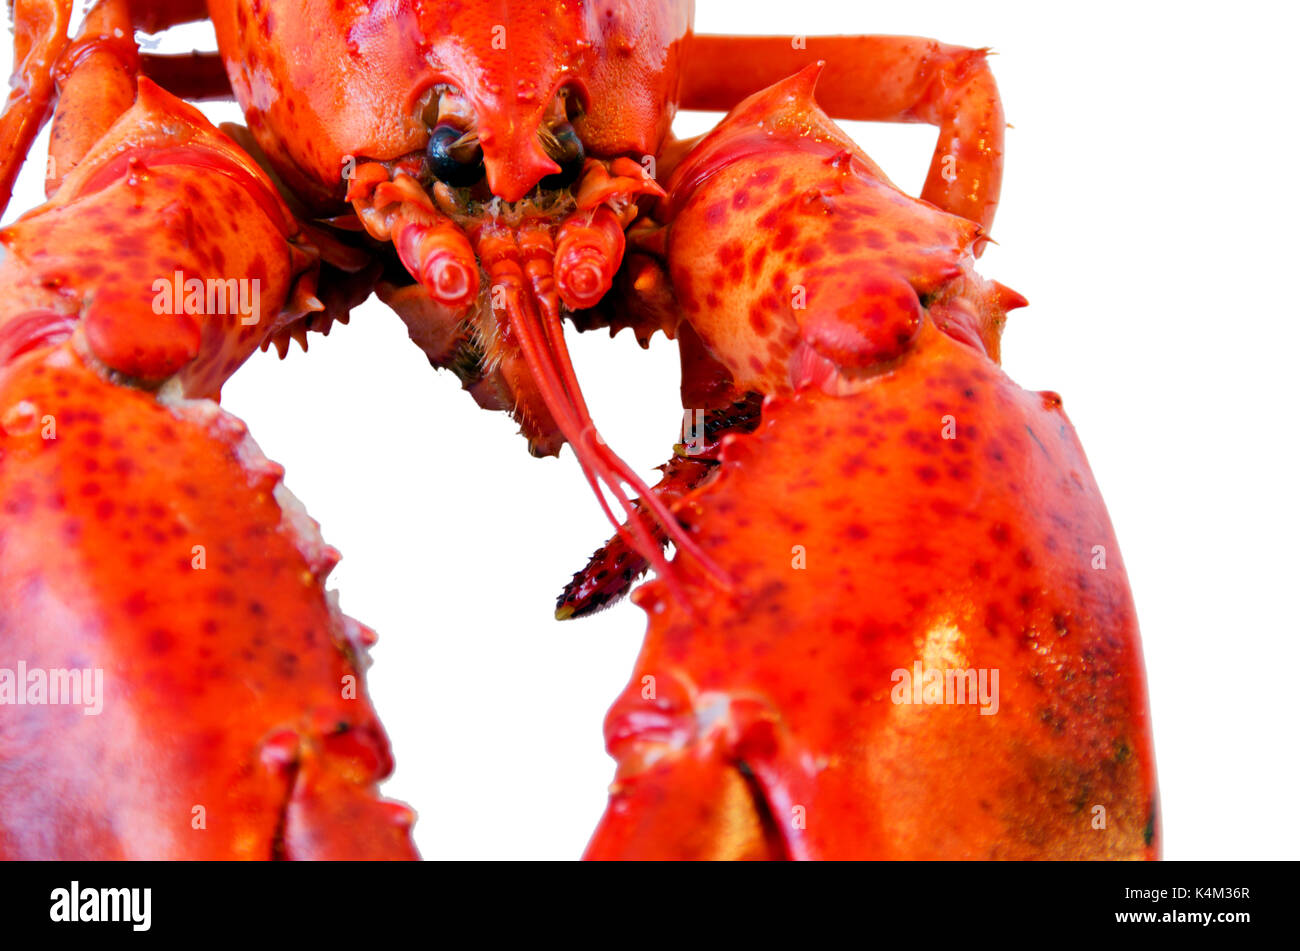 Cooked lobster isolated on white background - Stock Image